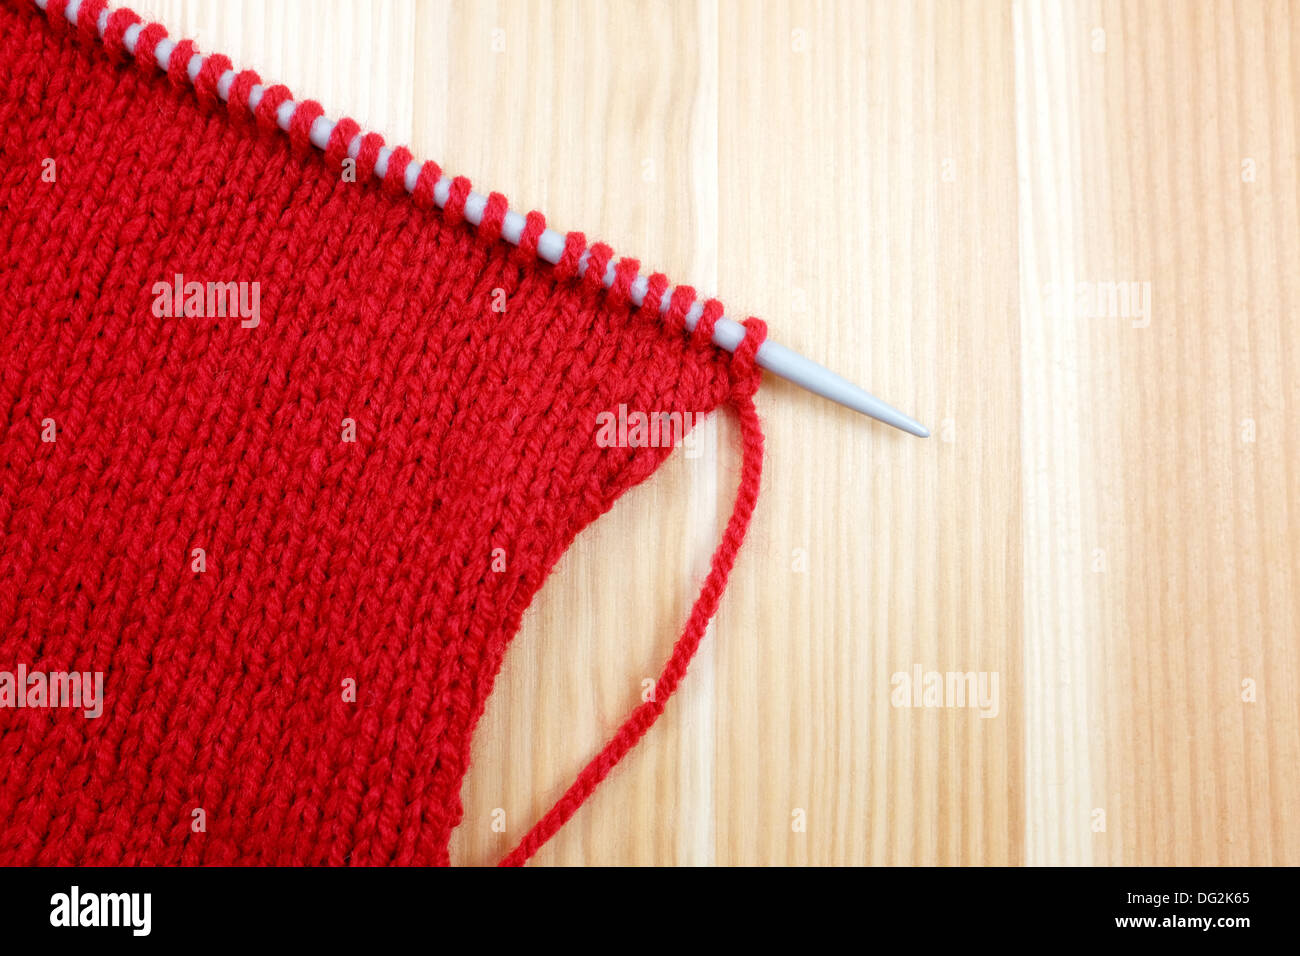 Stockinette Stitch High Resolution Stock Photography and